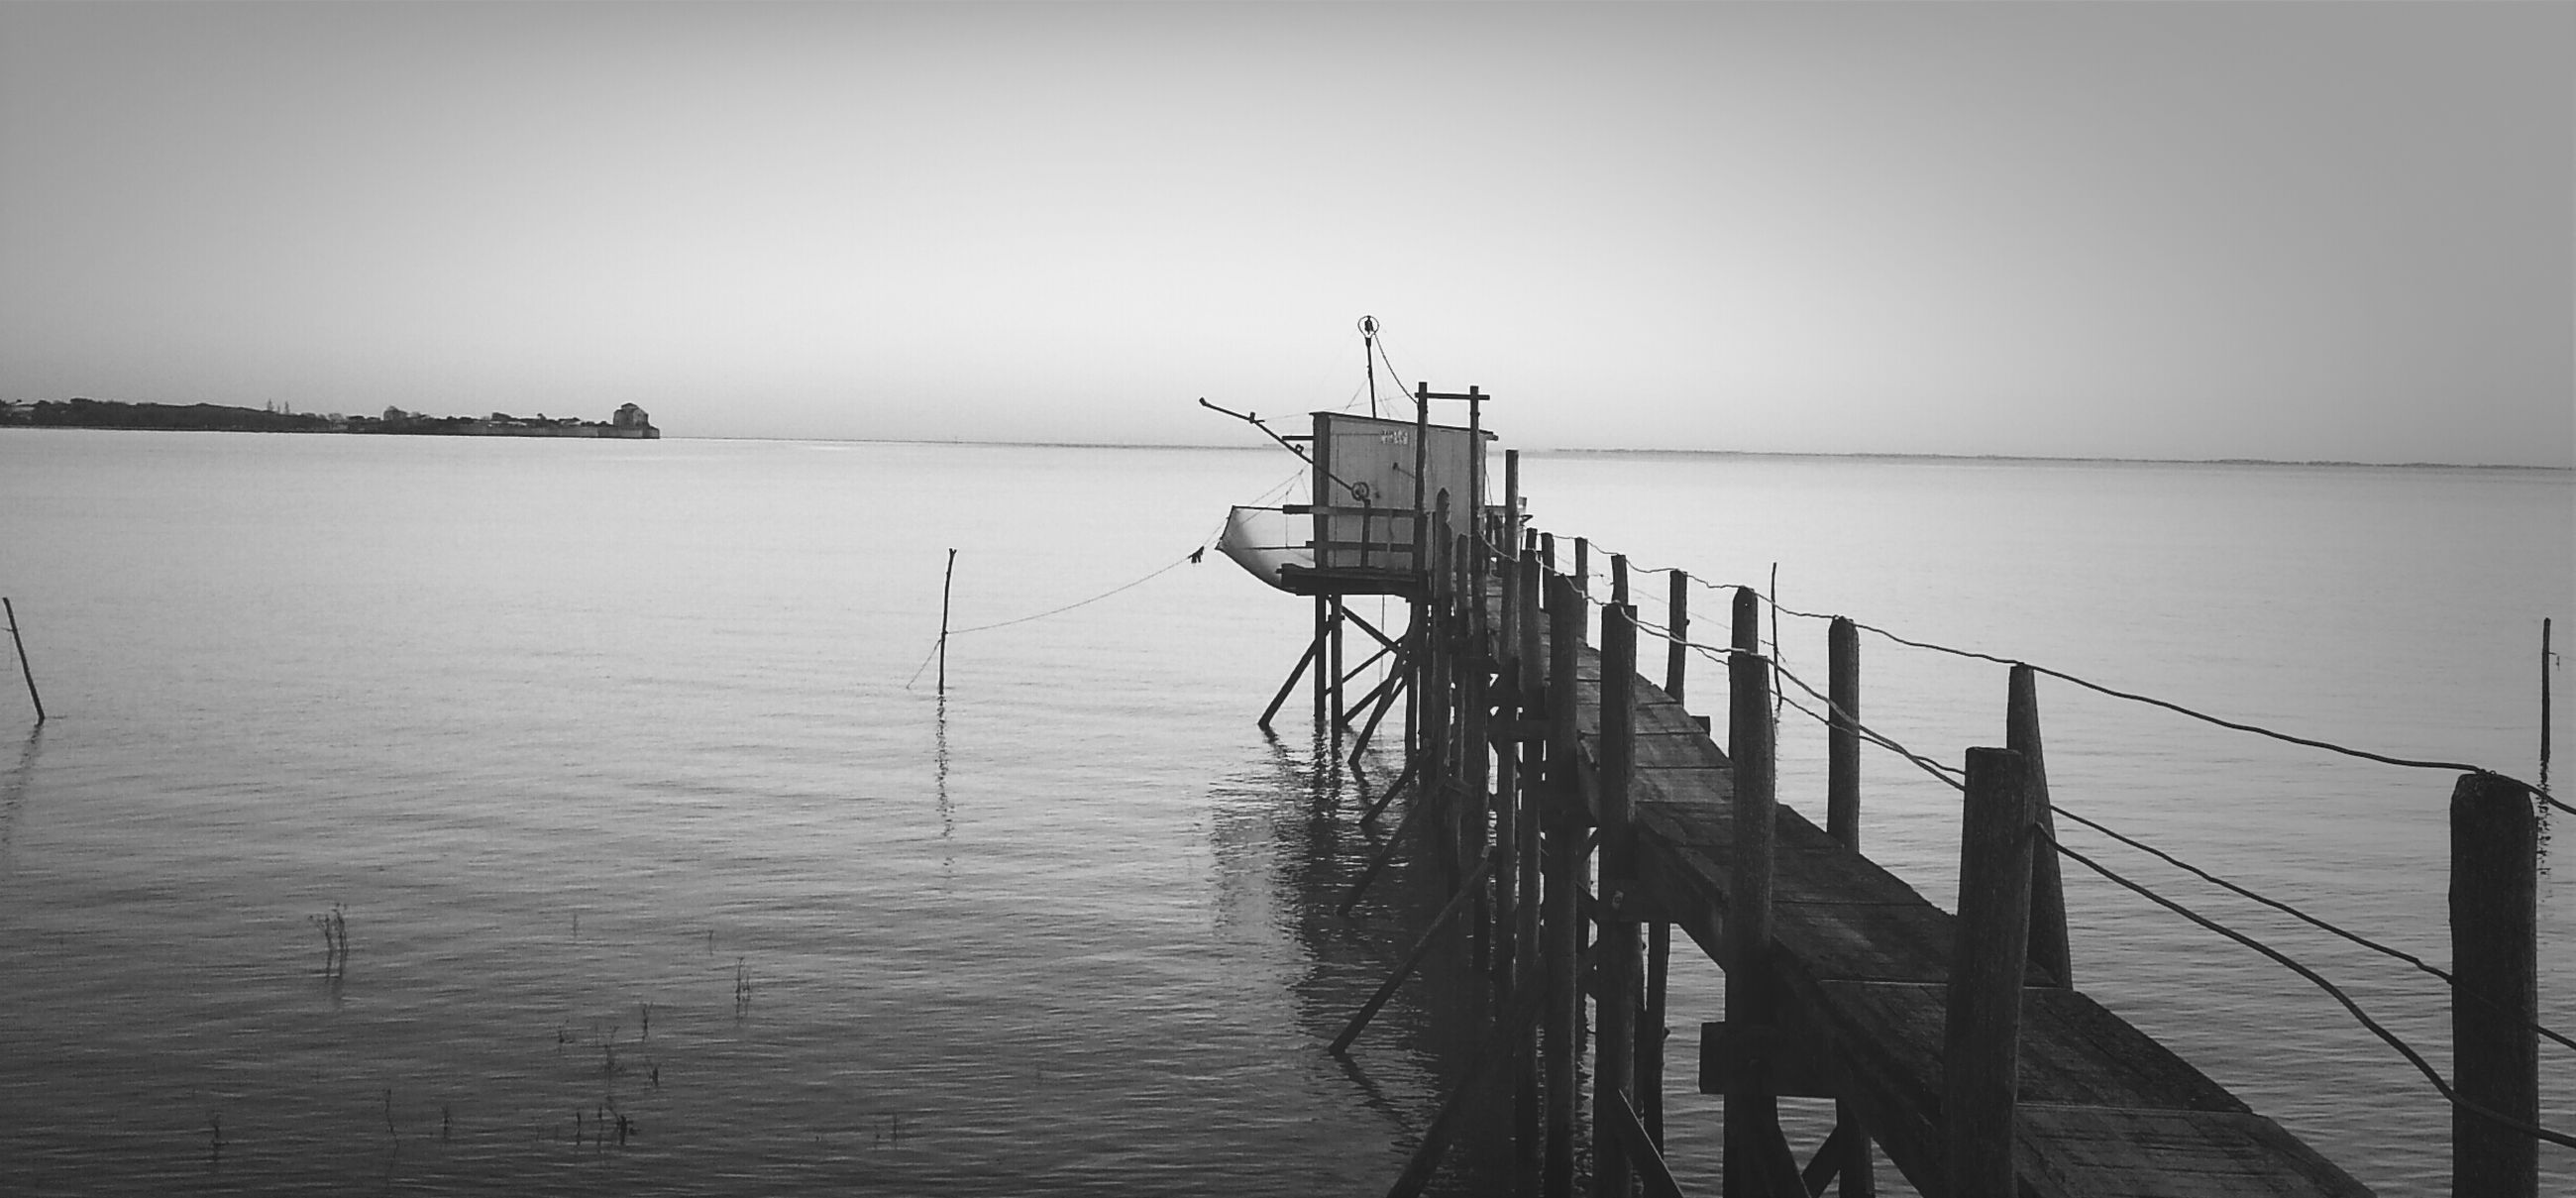 water, sea, horizon over water, tranquility, clear sky, tranquil scene, pier, copy space, nature, scenics, sky, wooden post, wood - material, beauty in nature, jetty, waterfront, built structure, day, outdoors, rippled